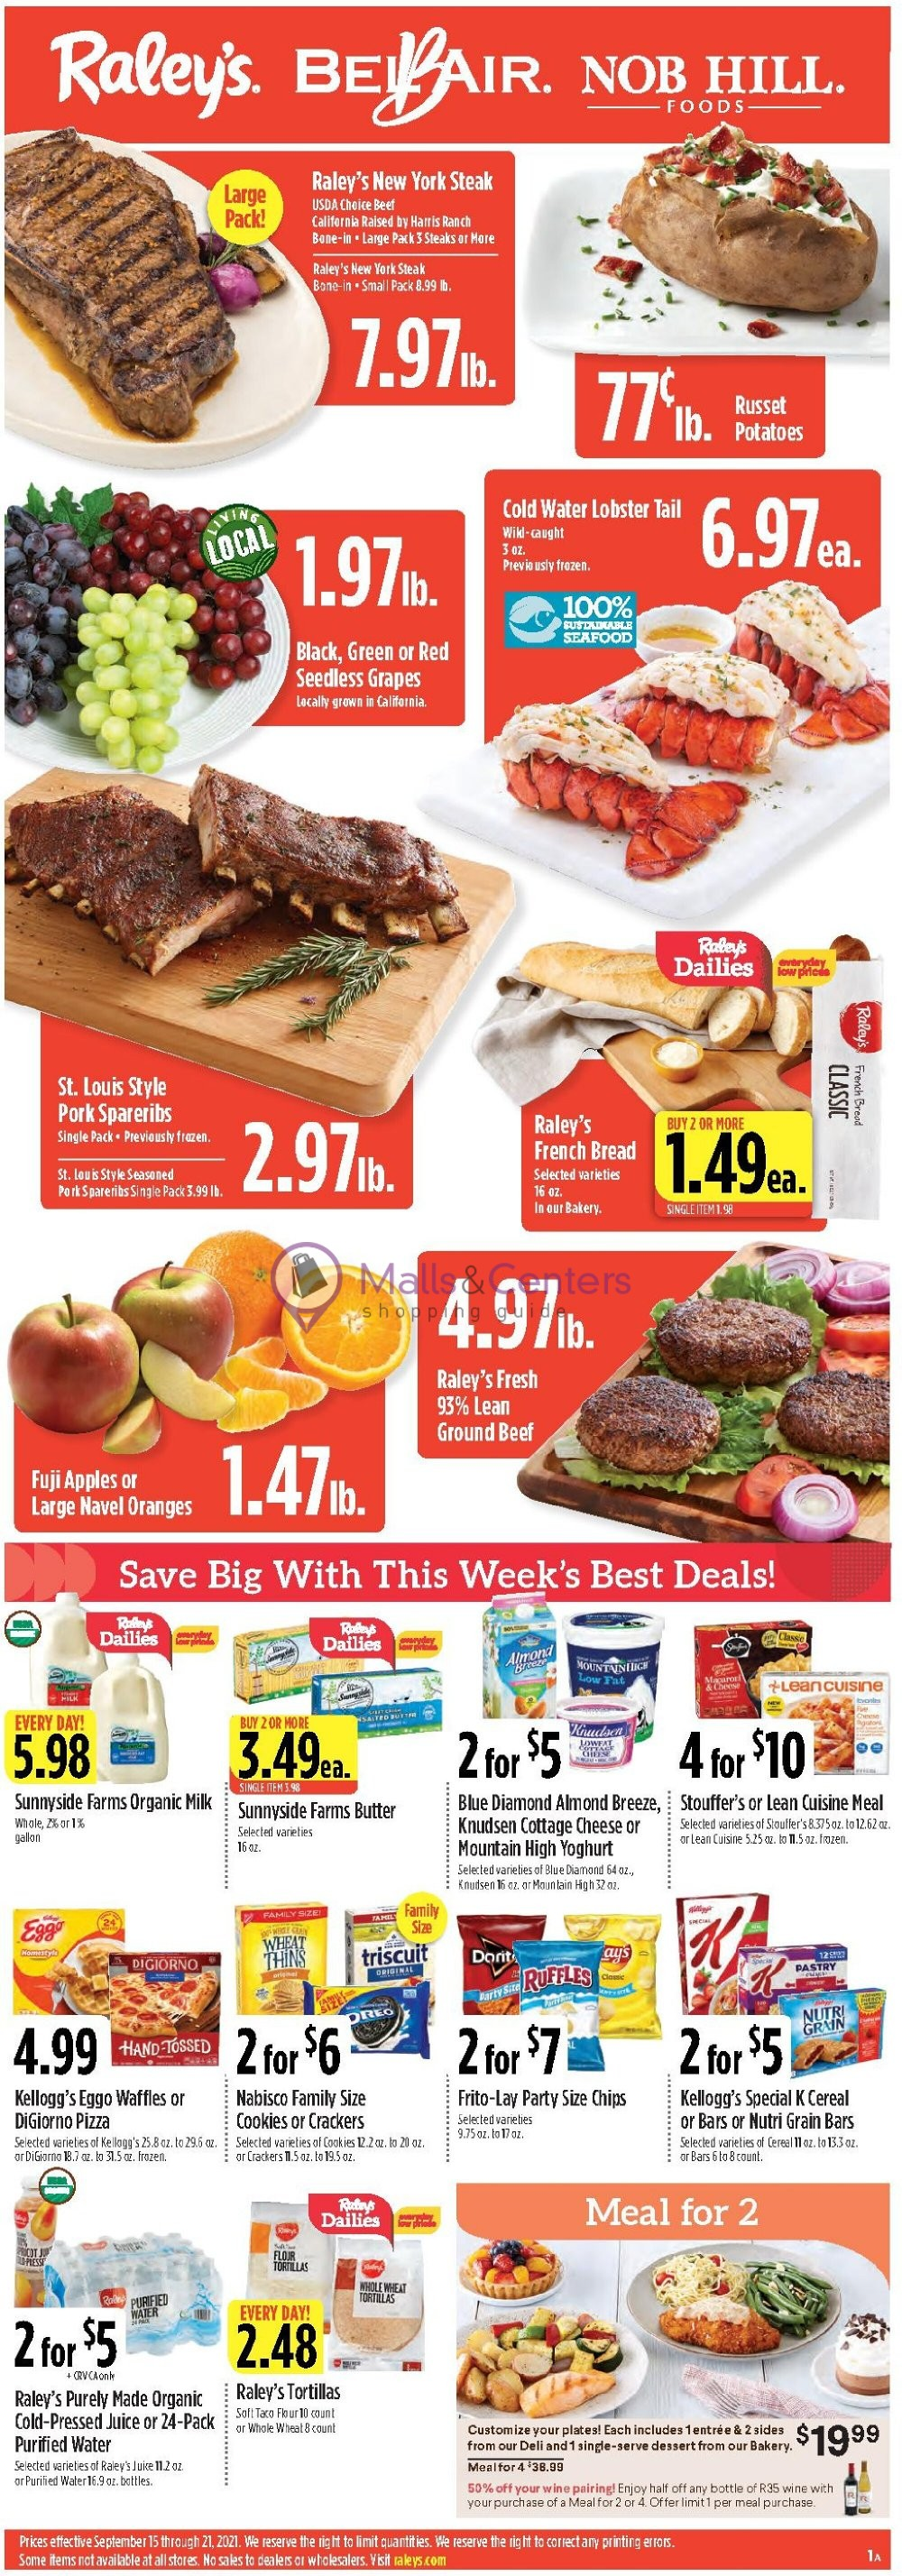 weekly ads Bel Air - page 1 - mallscenters.com